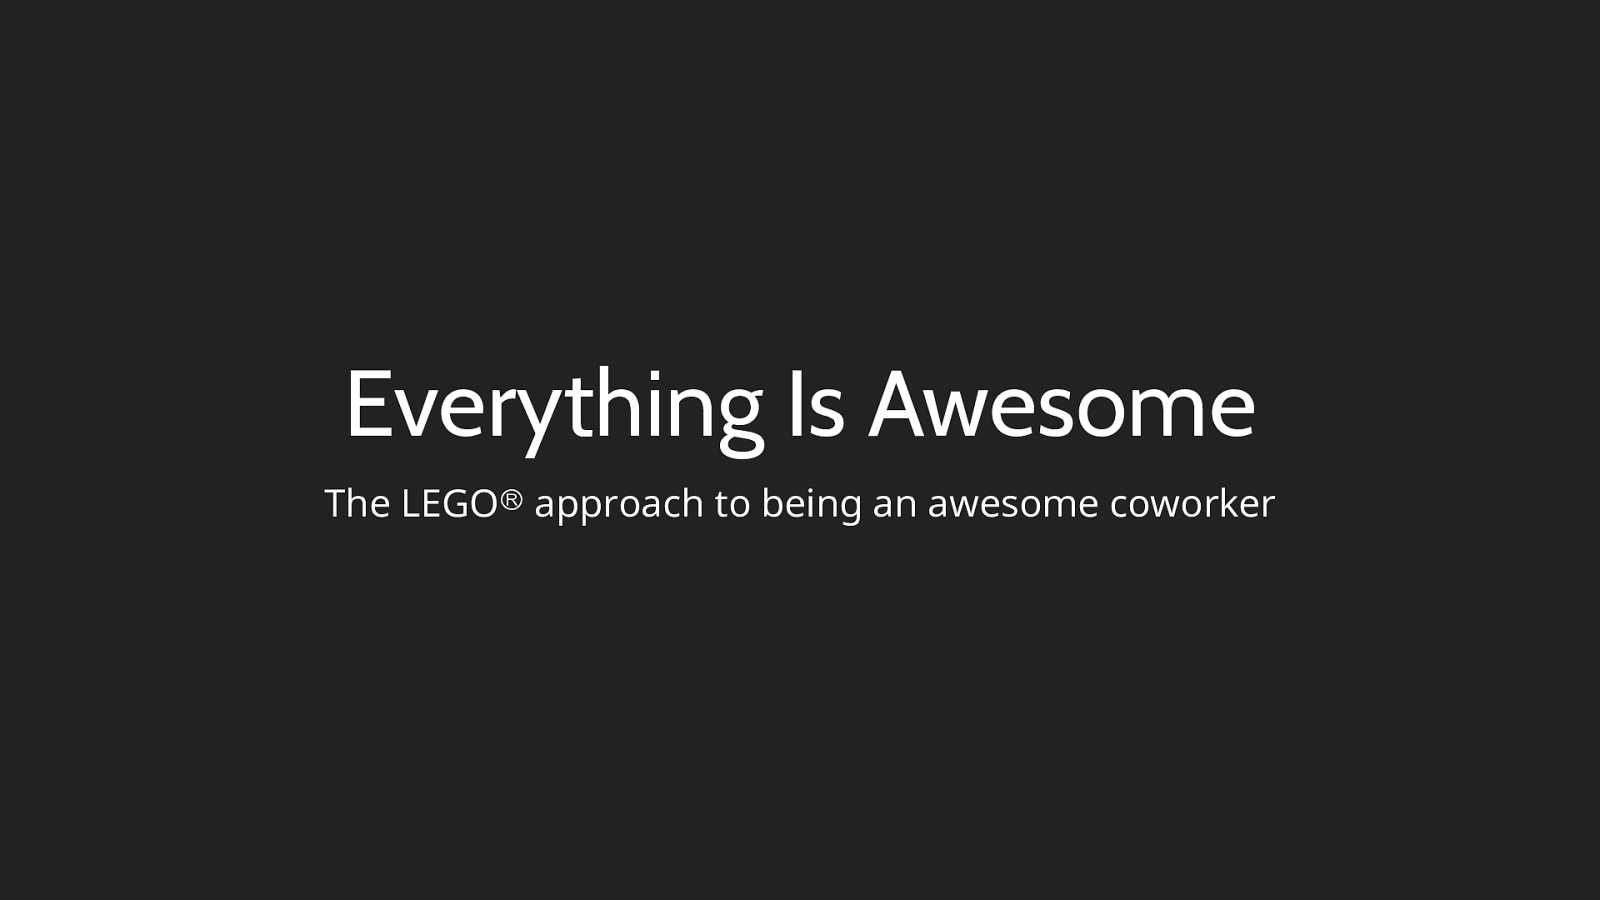 Everything is awesome: the LEGOⓇ approach to being an awesome coworker